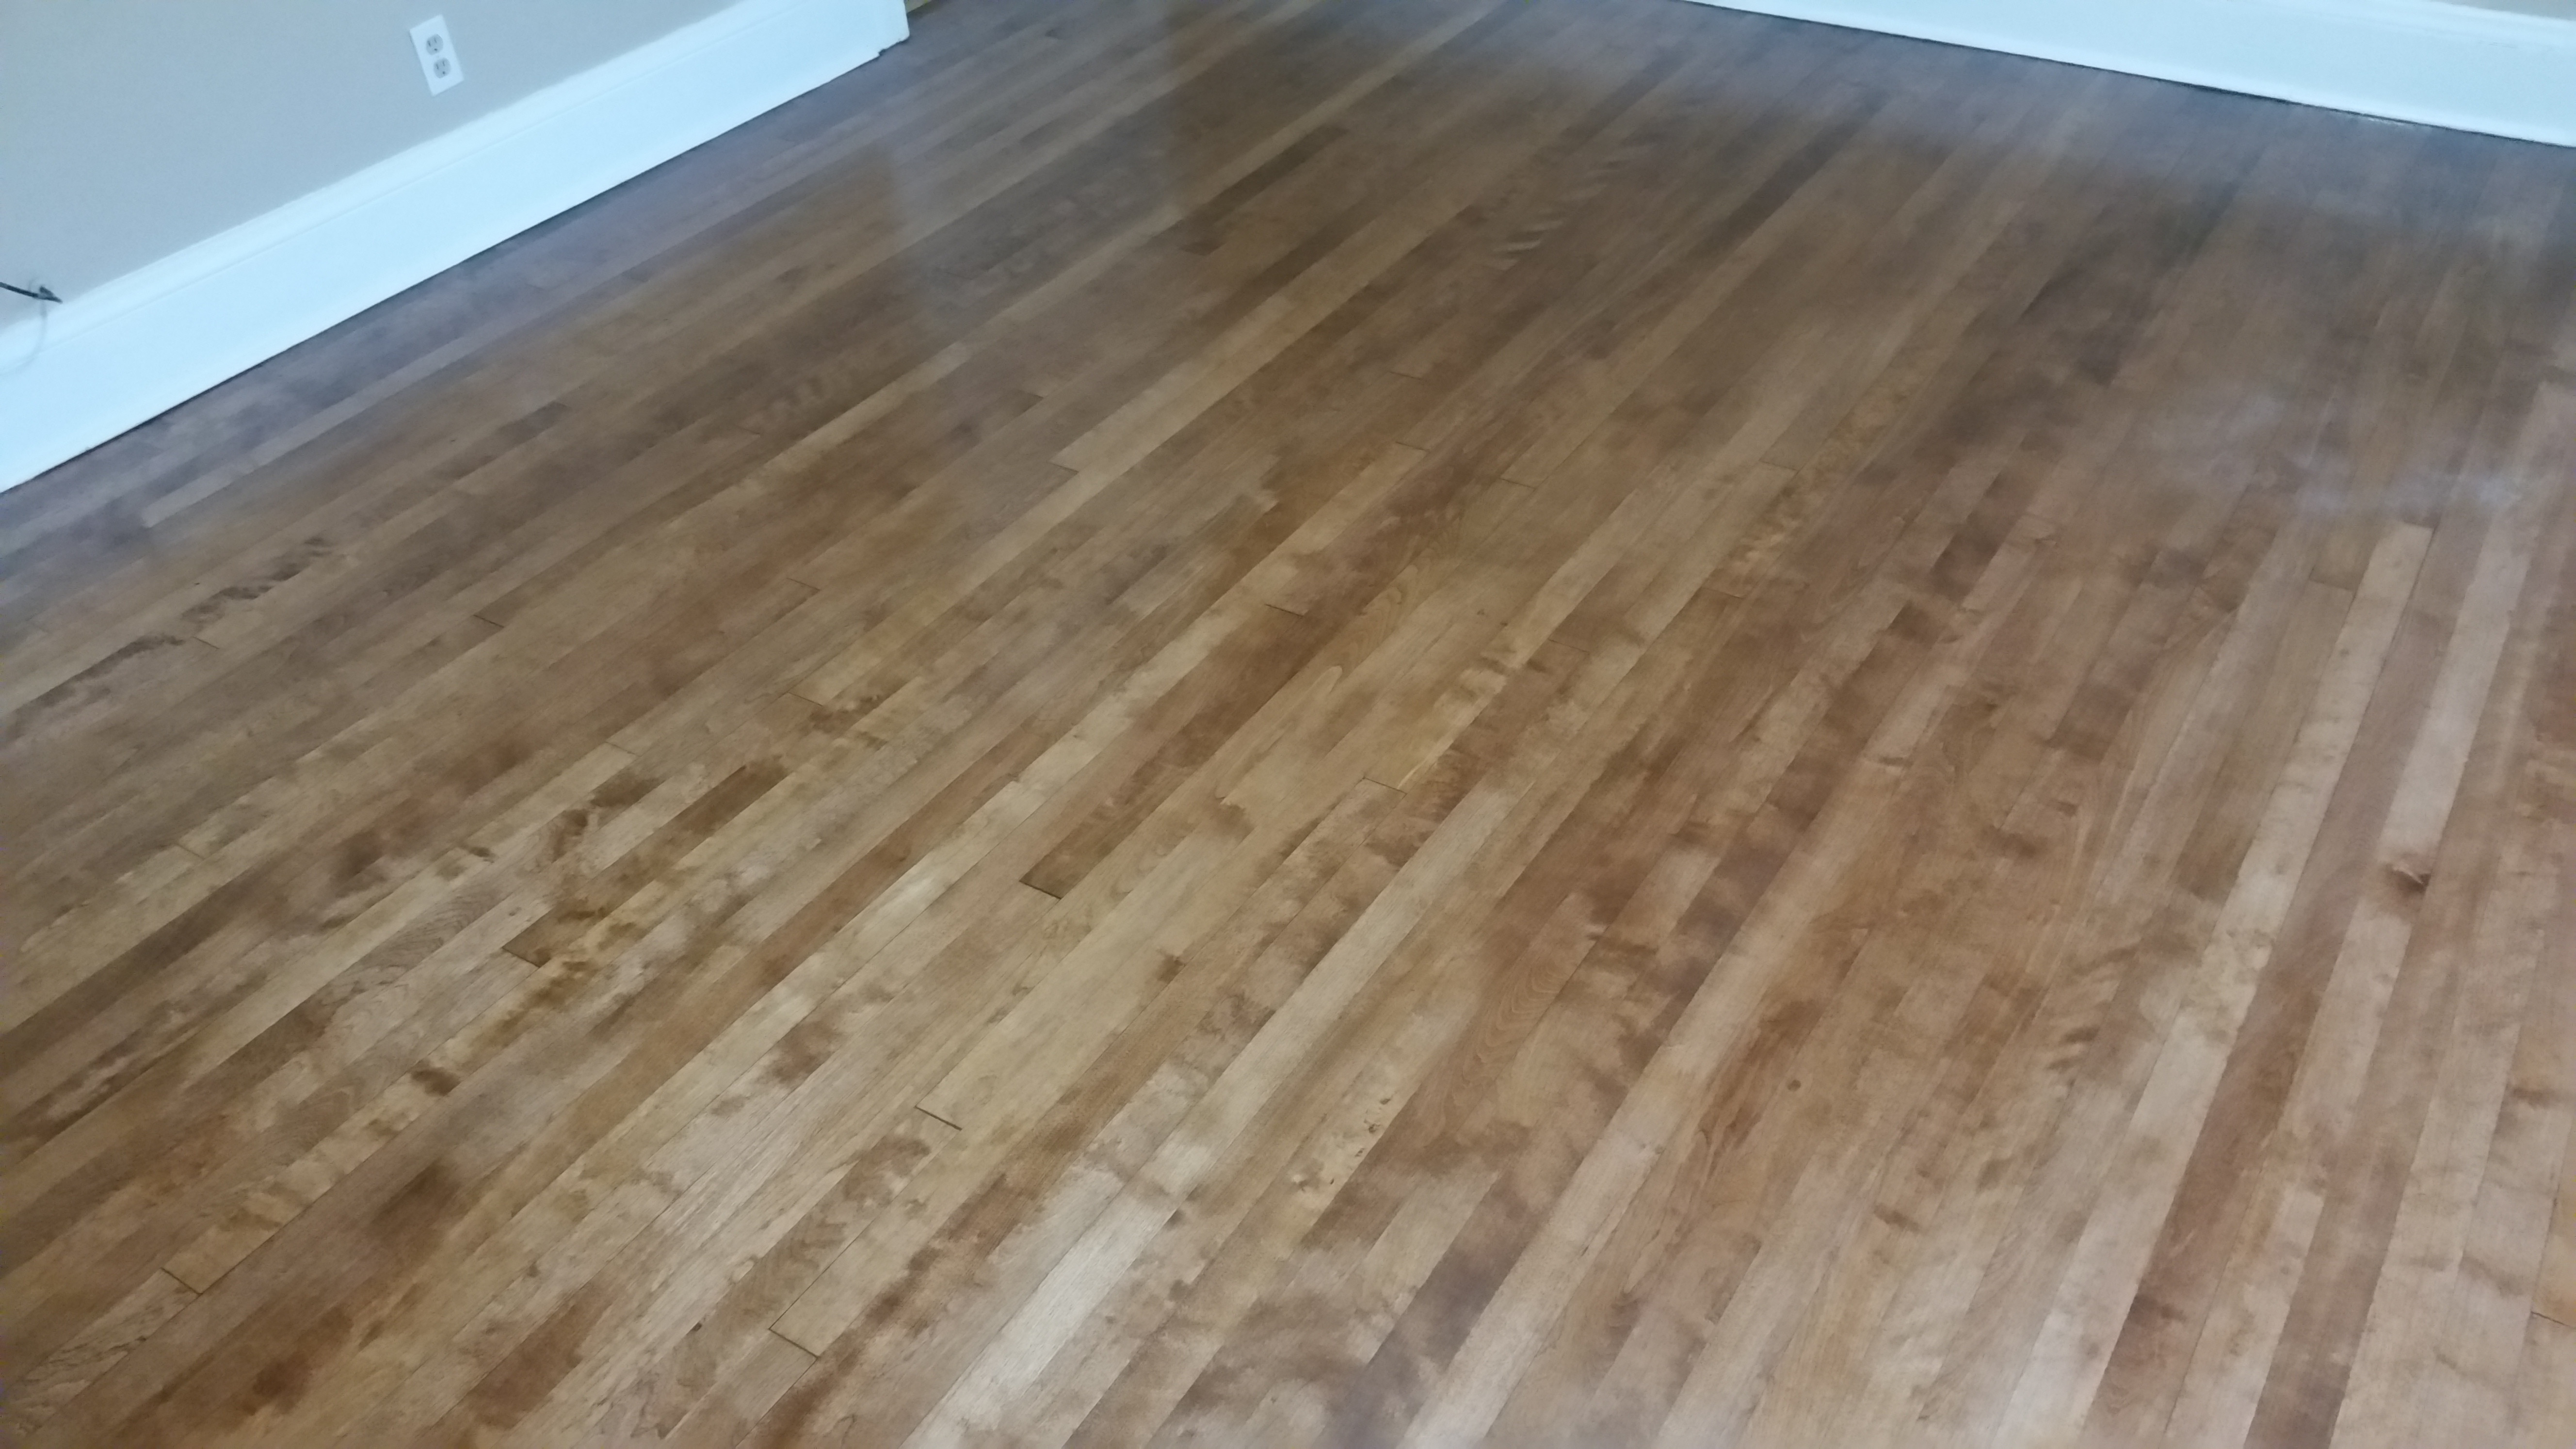 hardwood flooring versus laminate flooring of rochester hardwood floors of utica home regarding 20151028 104648 20160520 161308resize